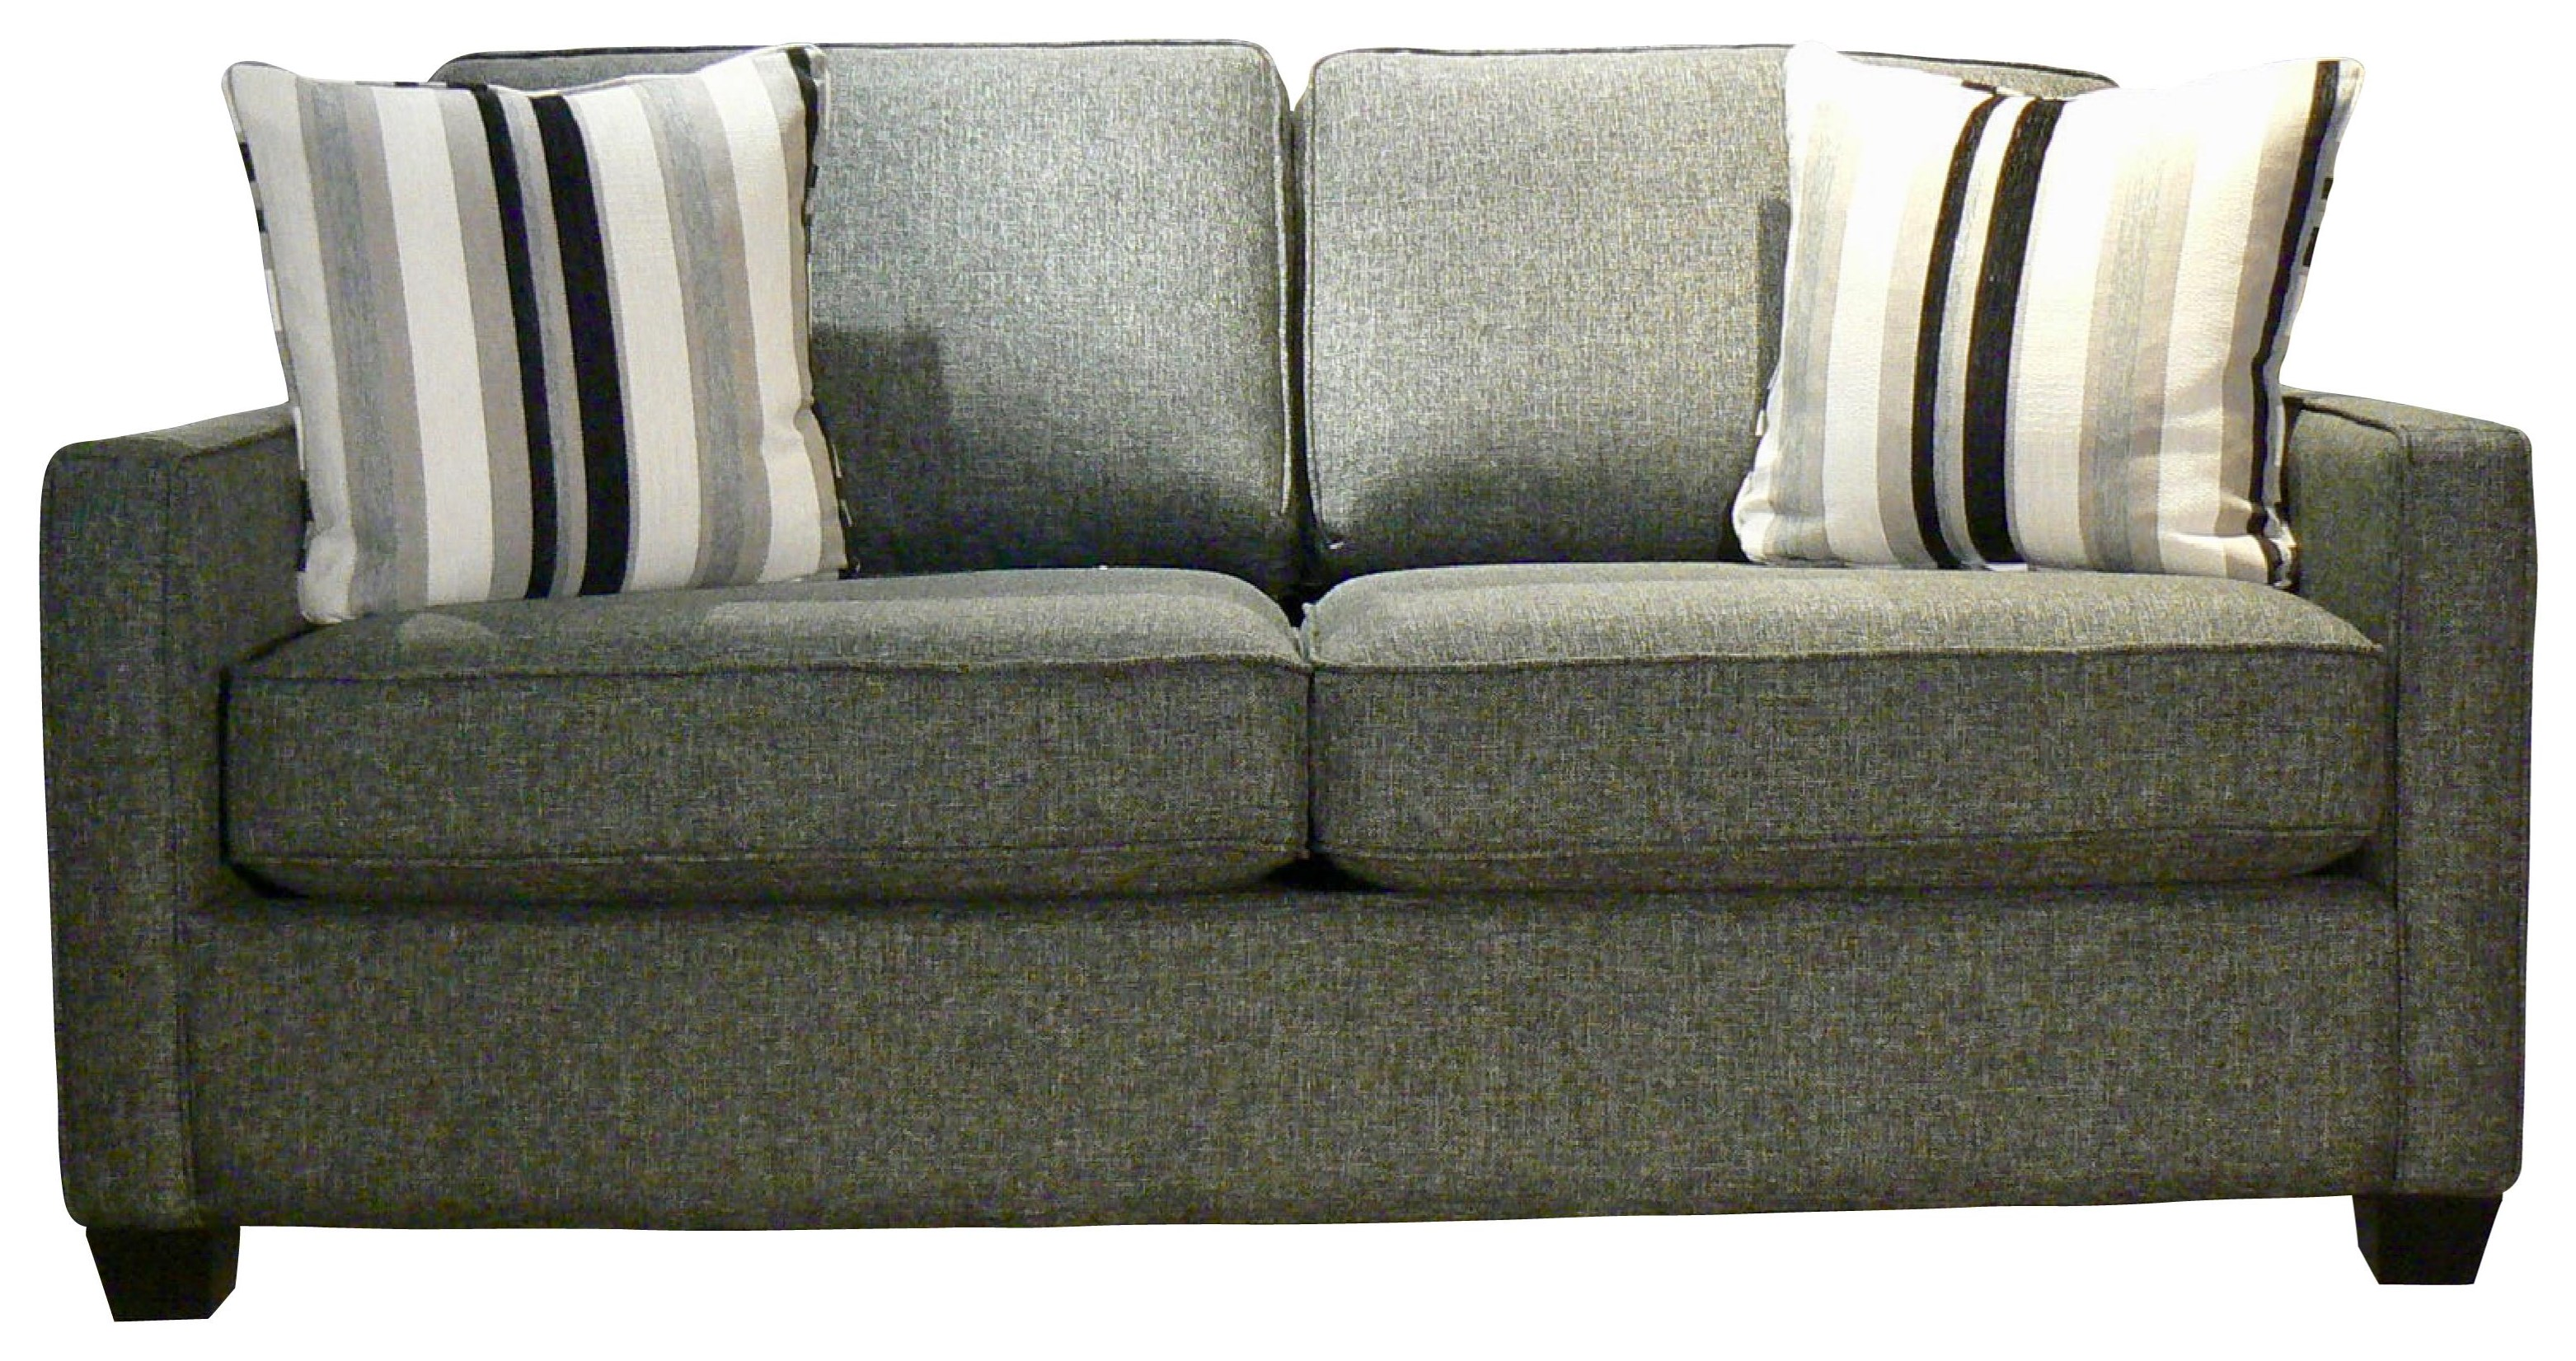 Lara Double Sleeper Sofa Bed by Taelor Designs at Bennett's Furniture and Mattresses